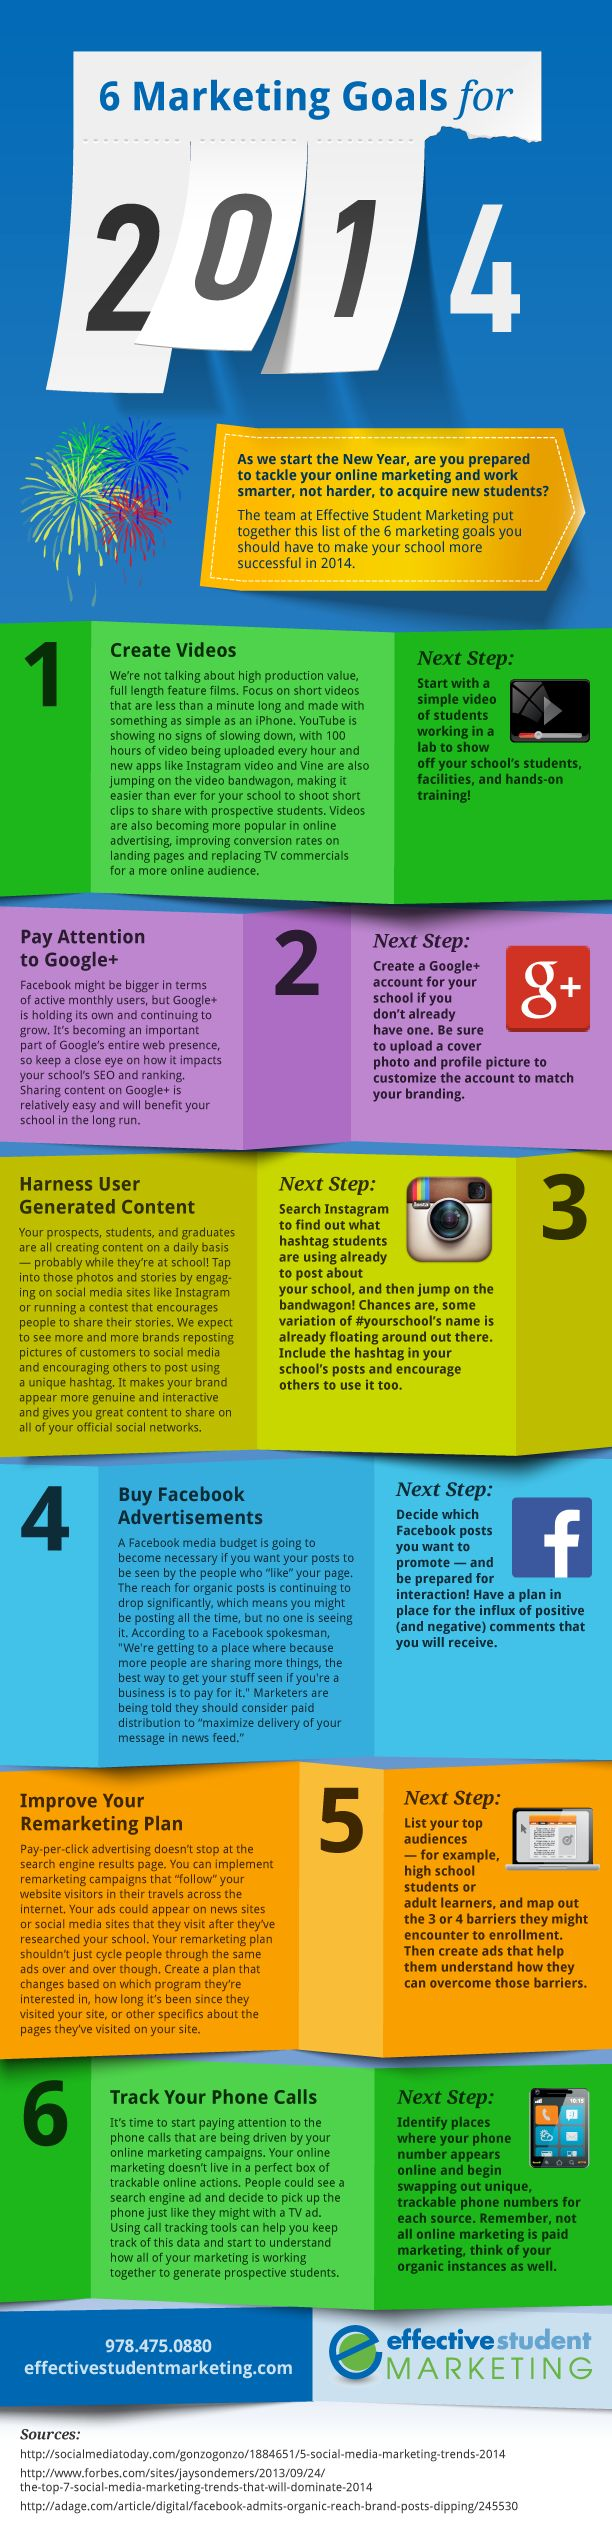 Your 6 Marketing Goals for 2014 [infographic] #highered #marketing #goals